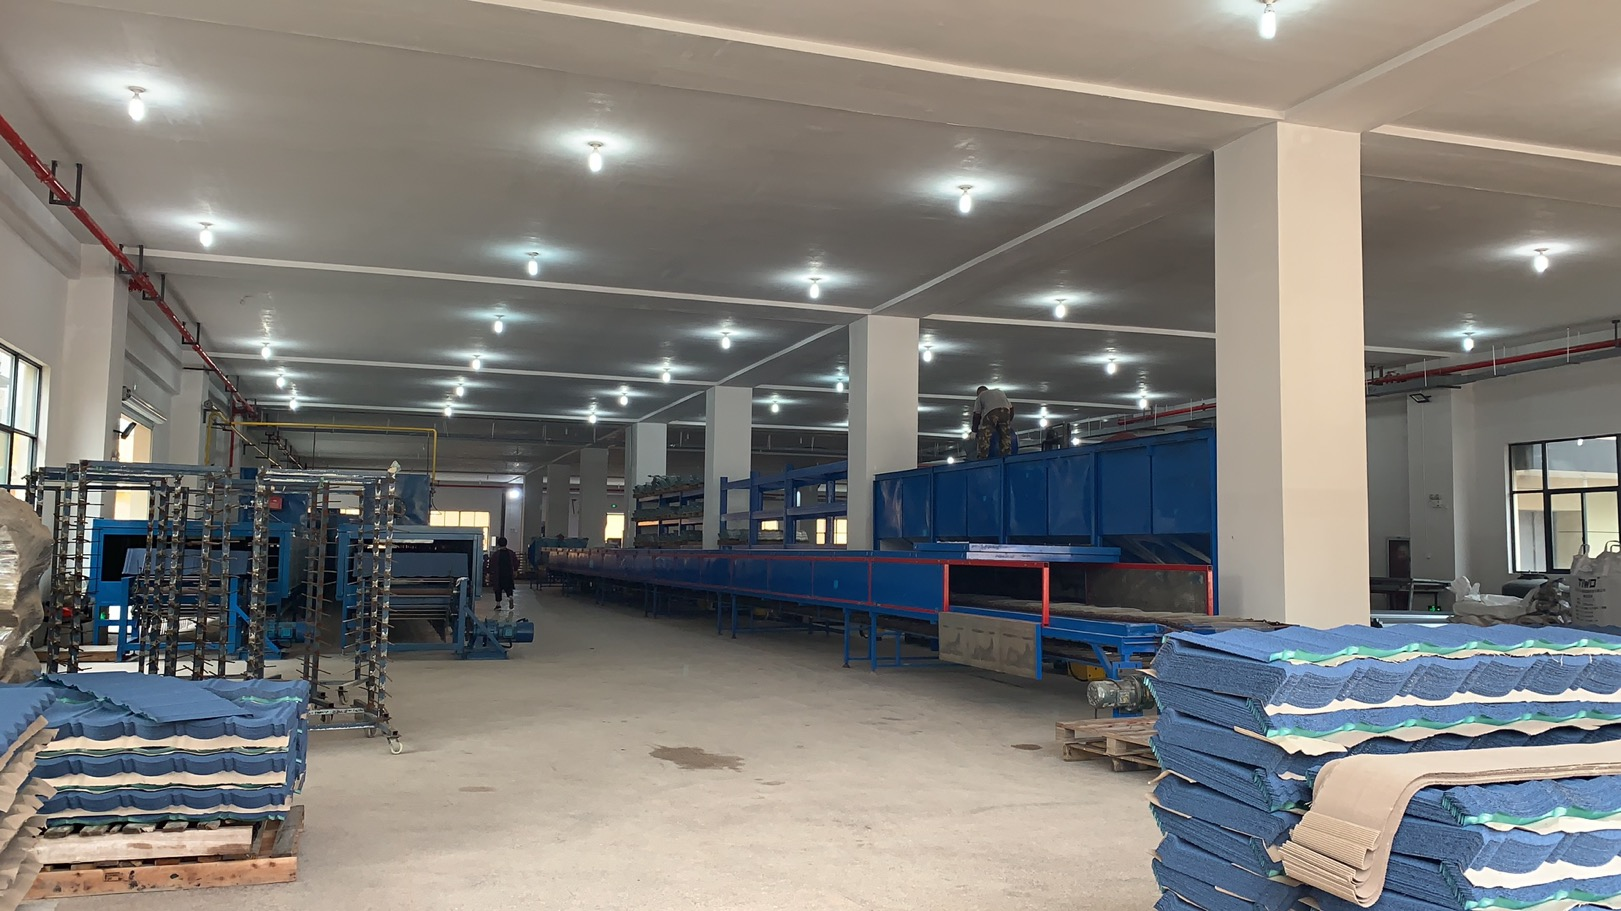 Our NEW Factory for stone coated metal roof tiles in Hangzhou fully opened this week